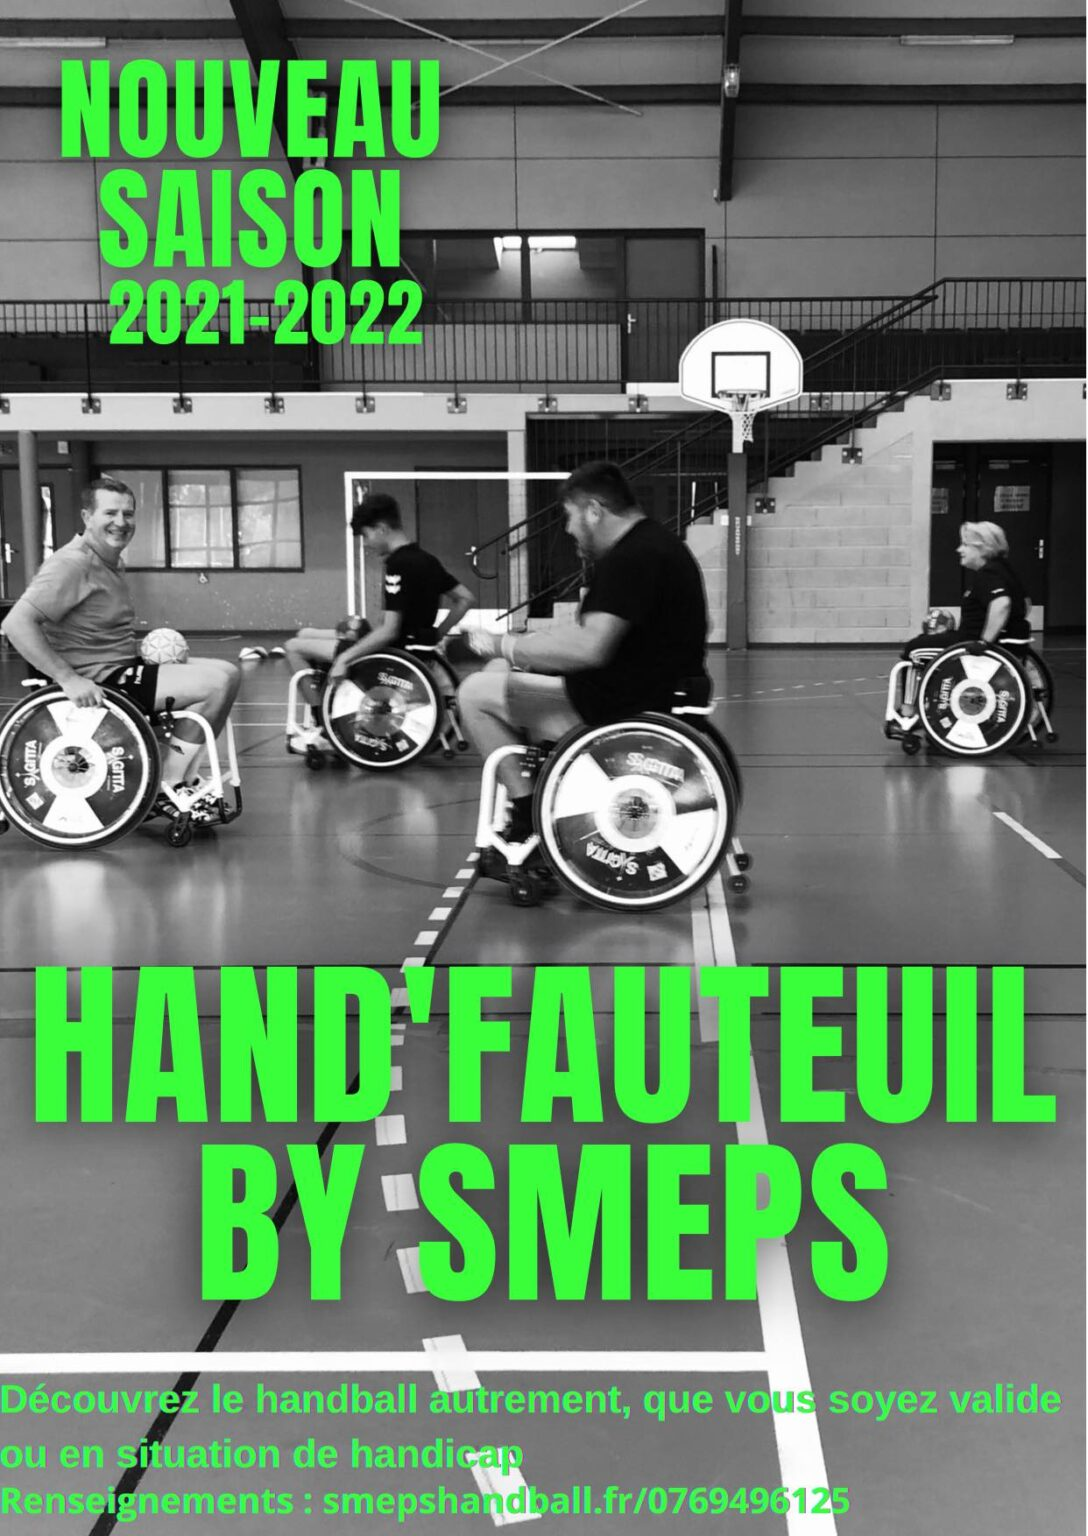 HAND'FAUTEUIL BY SMEPS